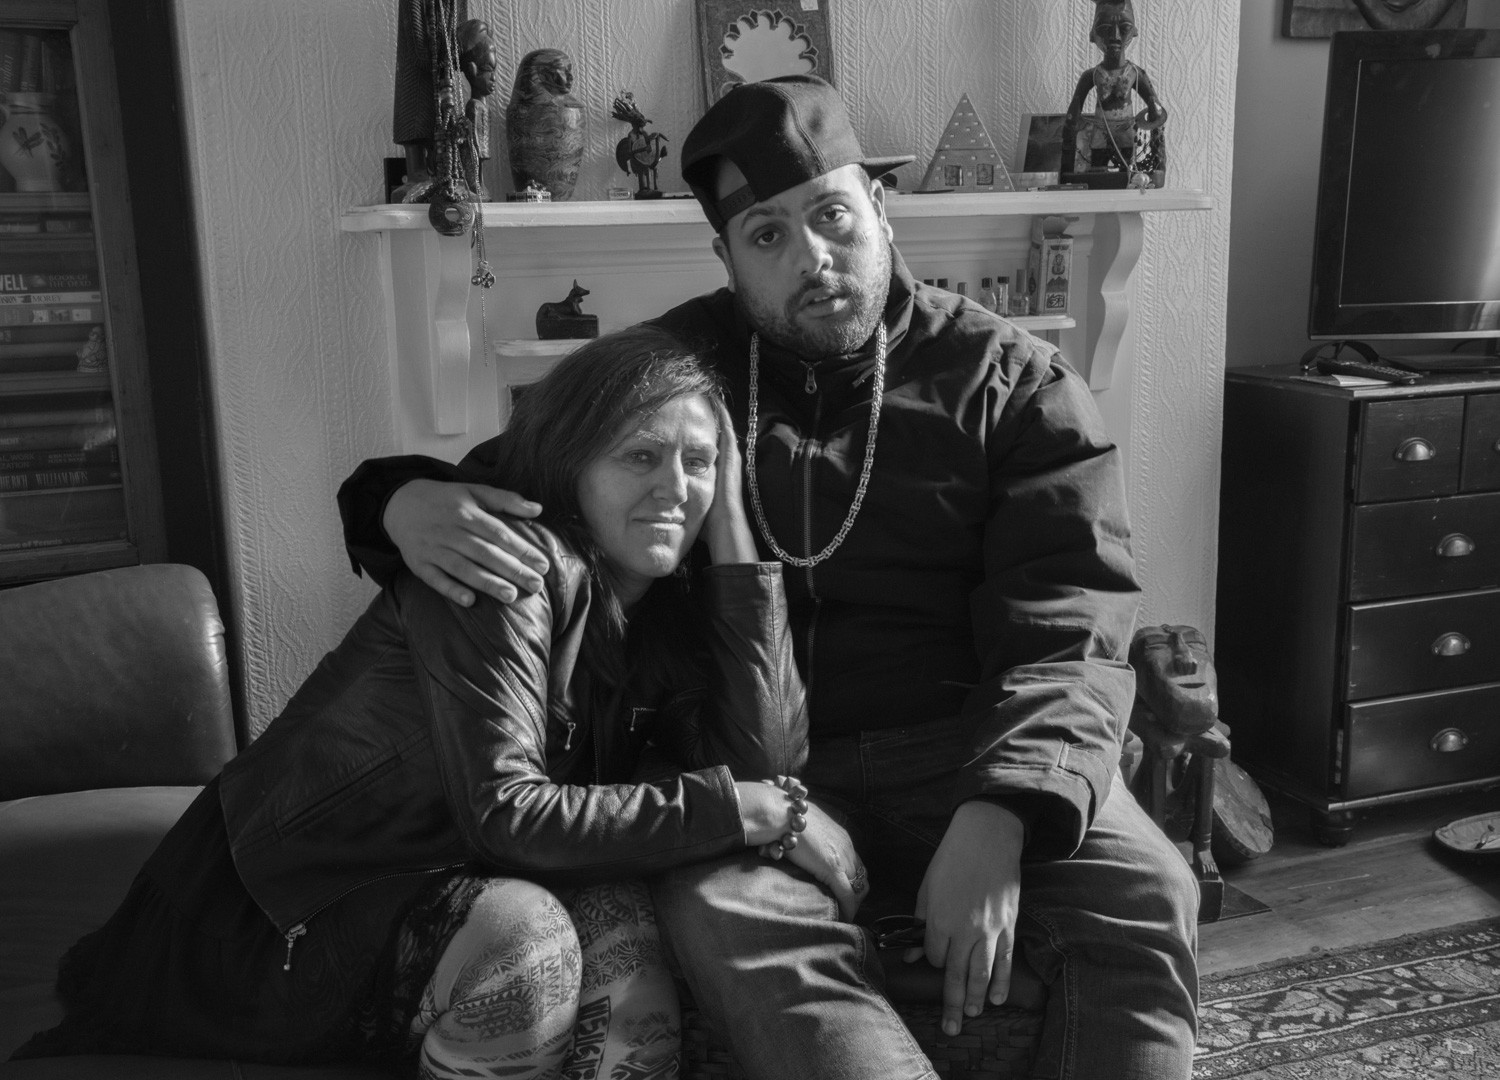 David Goldblatt, Paula Herriot and her son Eblon were in prison at the same time - he for firearms, robbery, wounding with intent, she for dealing cocaine, 2015